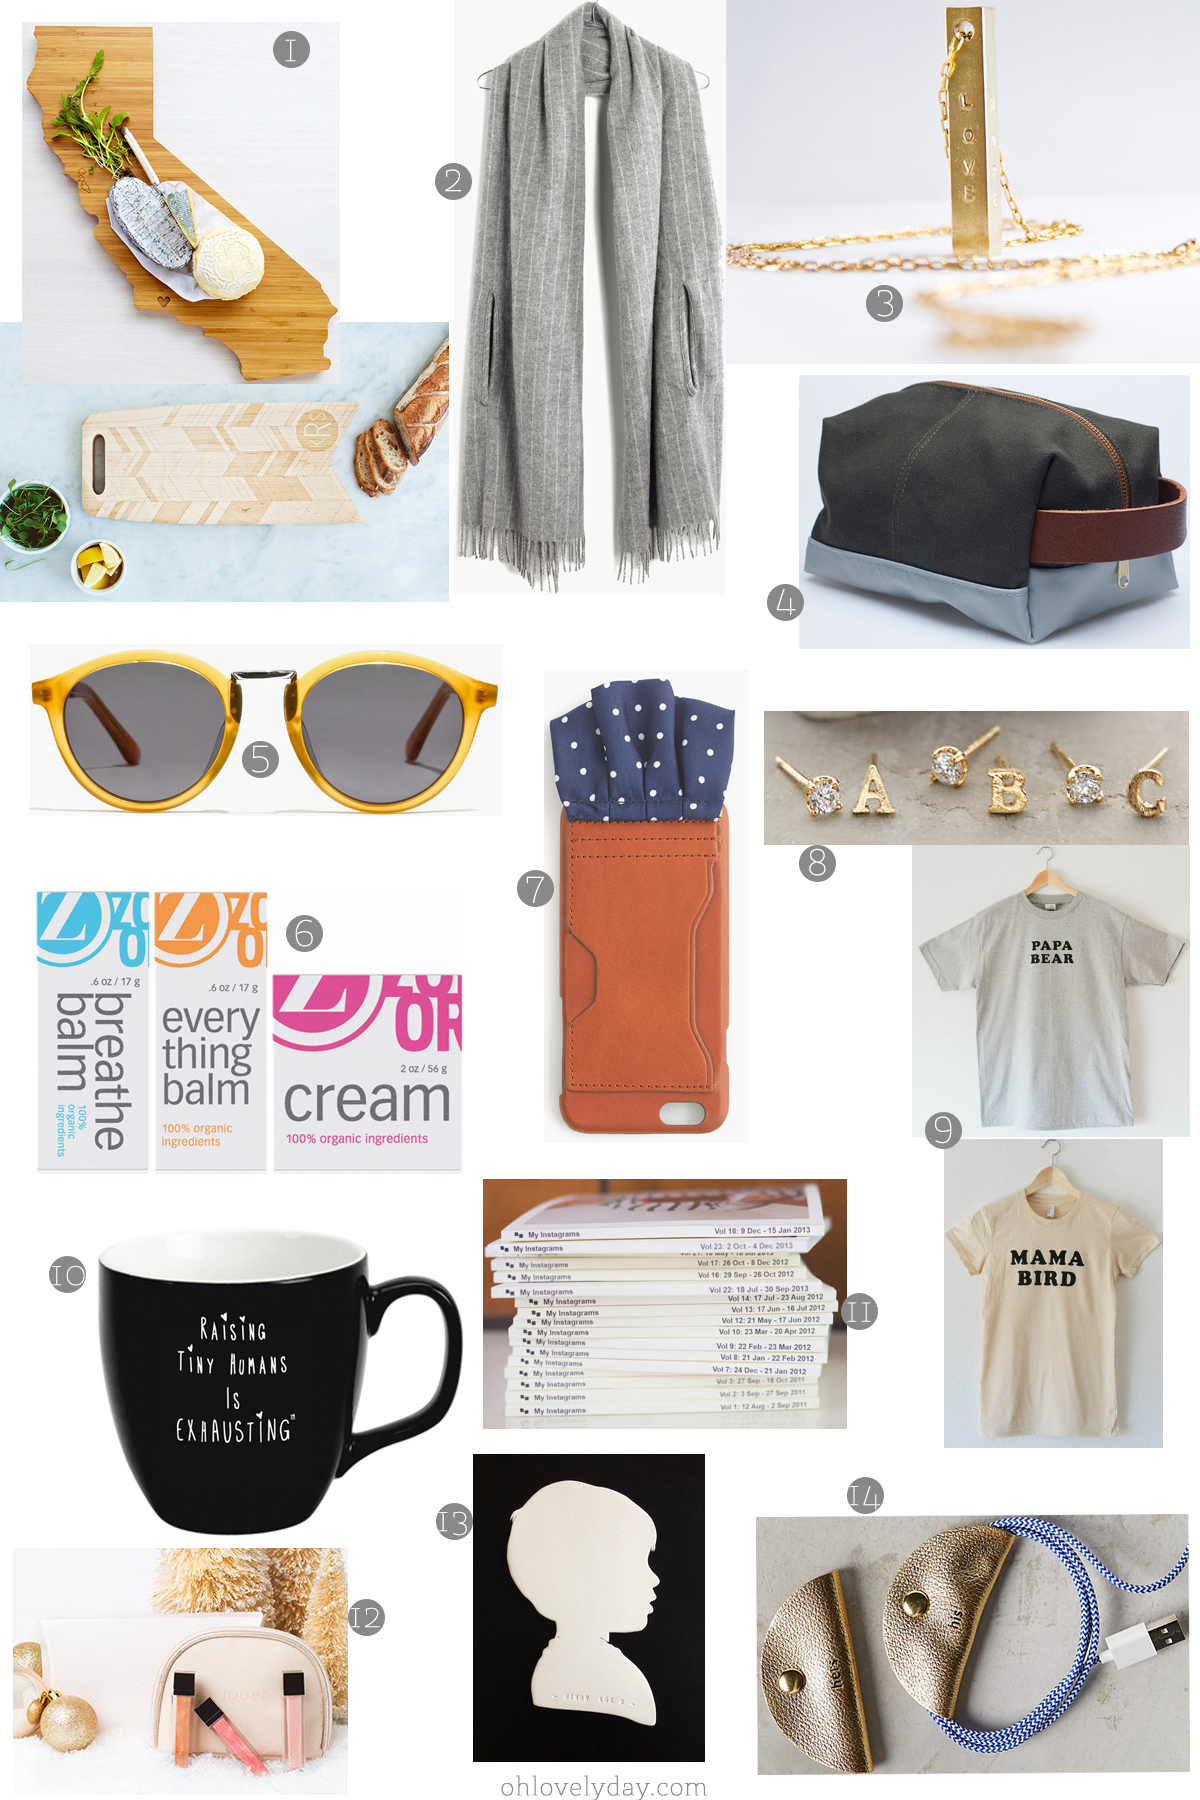 Oh Lovely Day Holiday Gift Guide for Grown Ups 2015